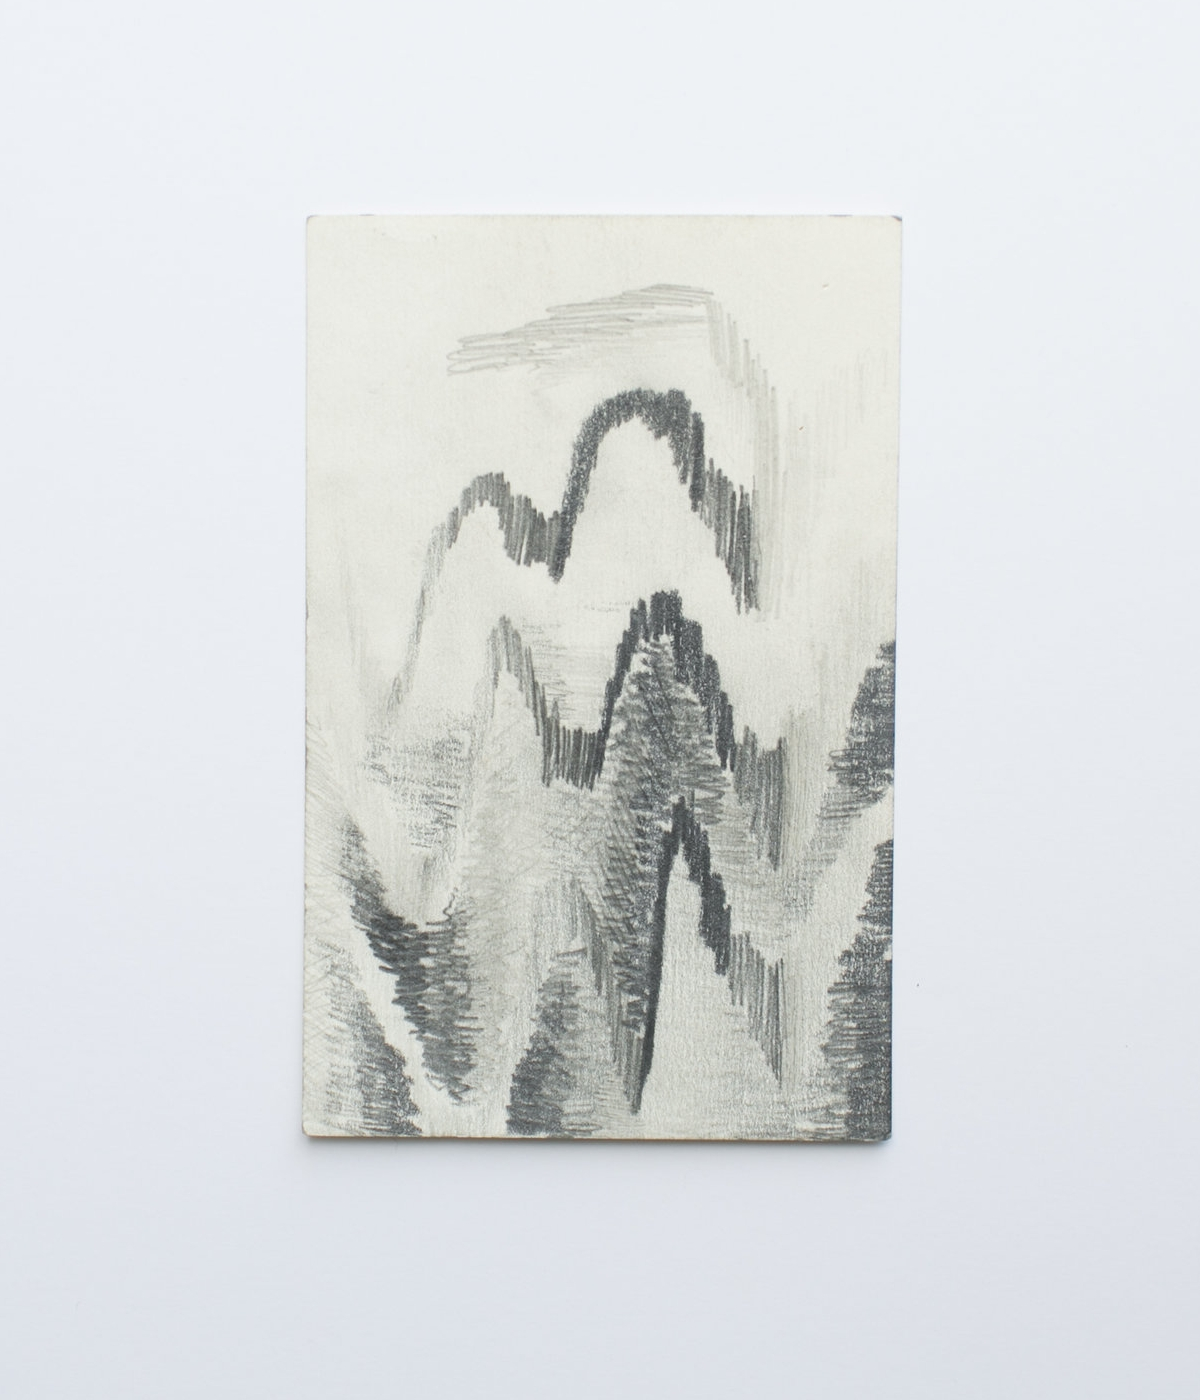 """Untitled Systems Design #1 5.5"""" x 4.25"""""""